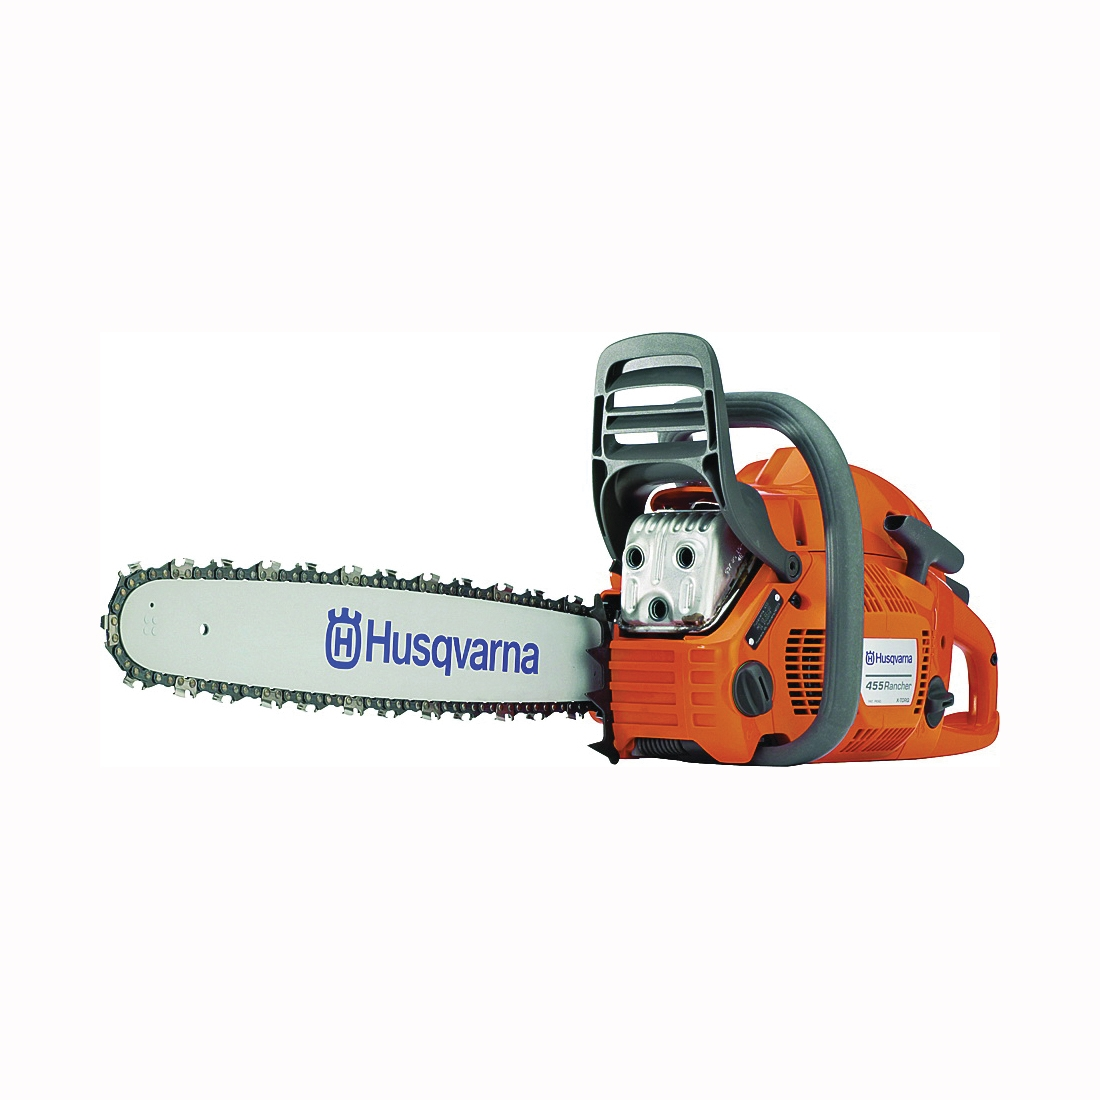 Picture of Poulan Pro 450-20 Chainsaw, Gas, 50 cc Engine Displacement, X-Torq Engine, 20 in L Bar/Chain, Ergonomic Handle